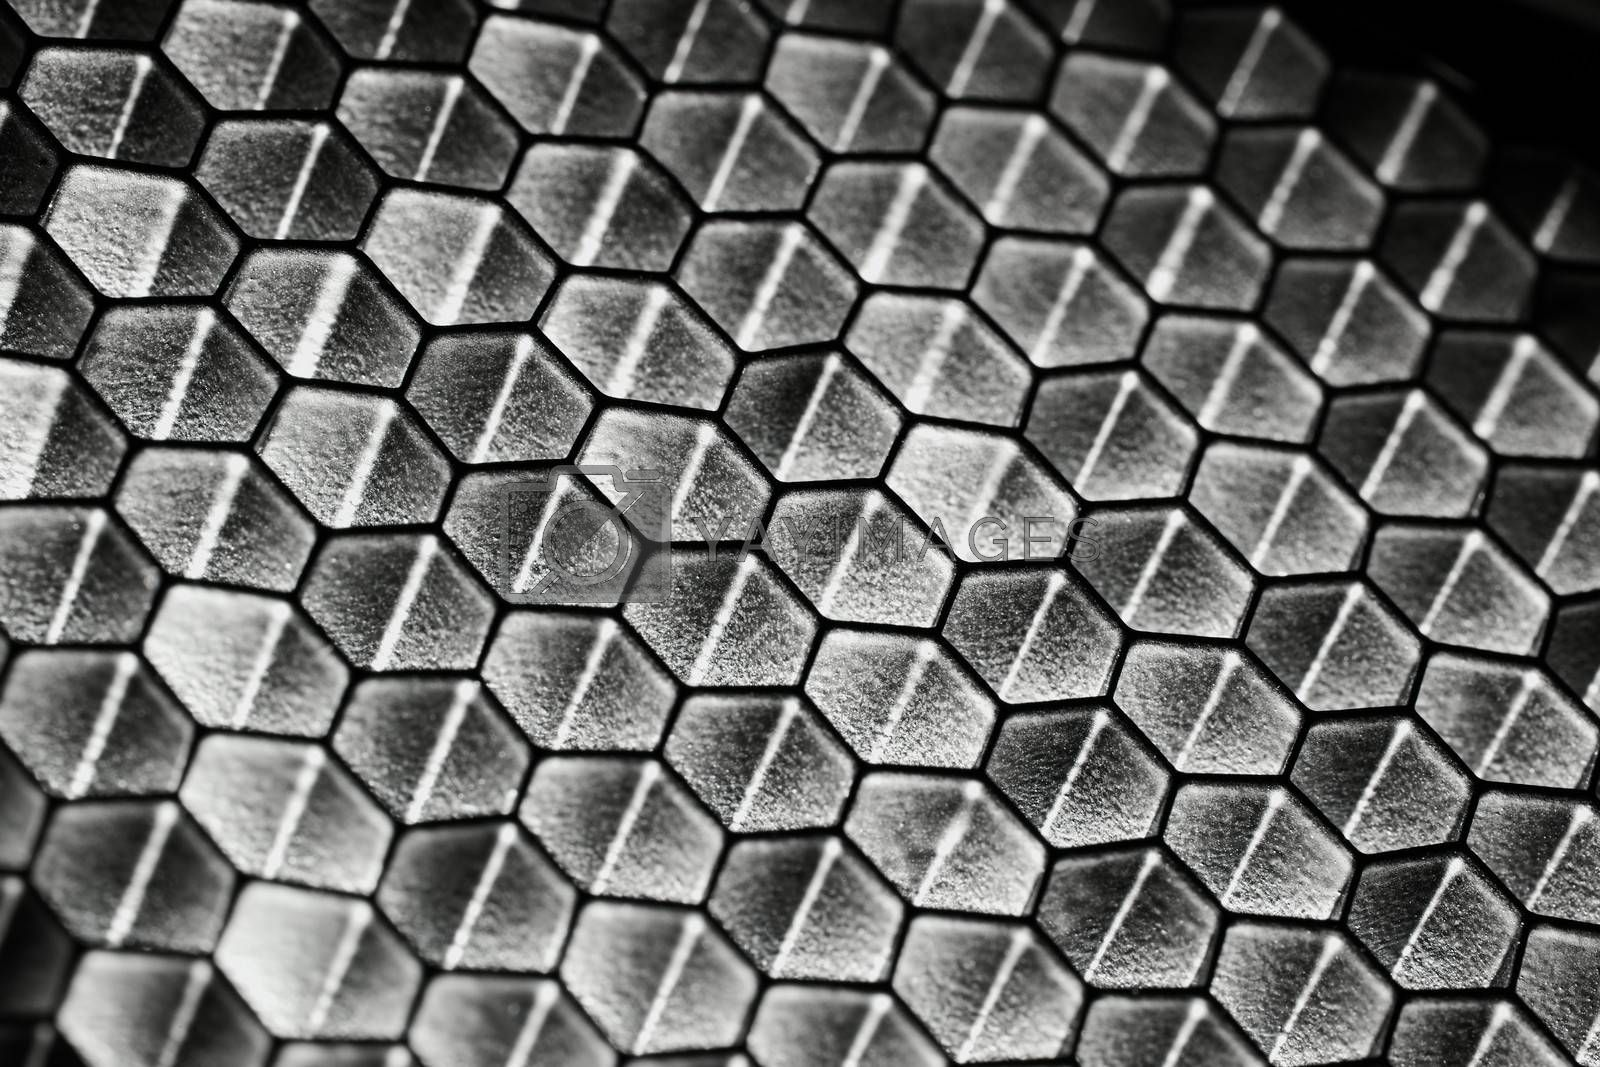 Royalty free image of Honeycomb pattern by Gudella